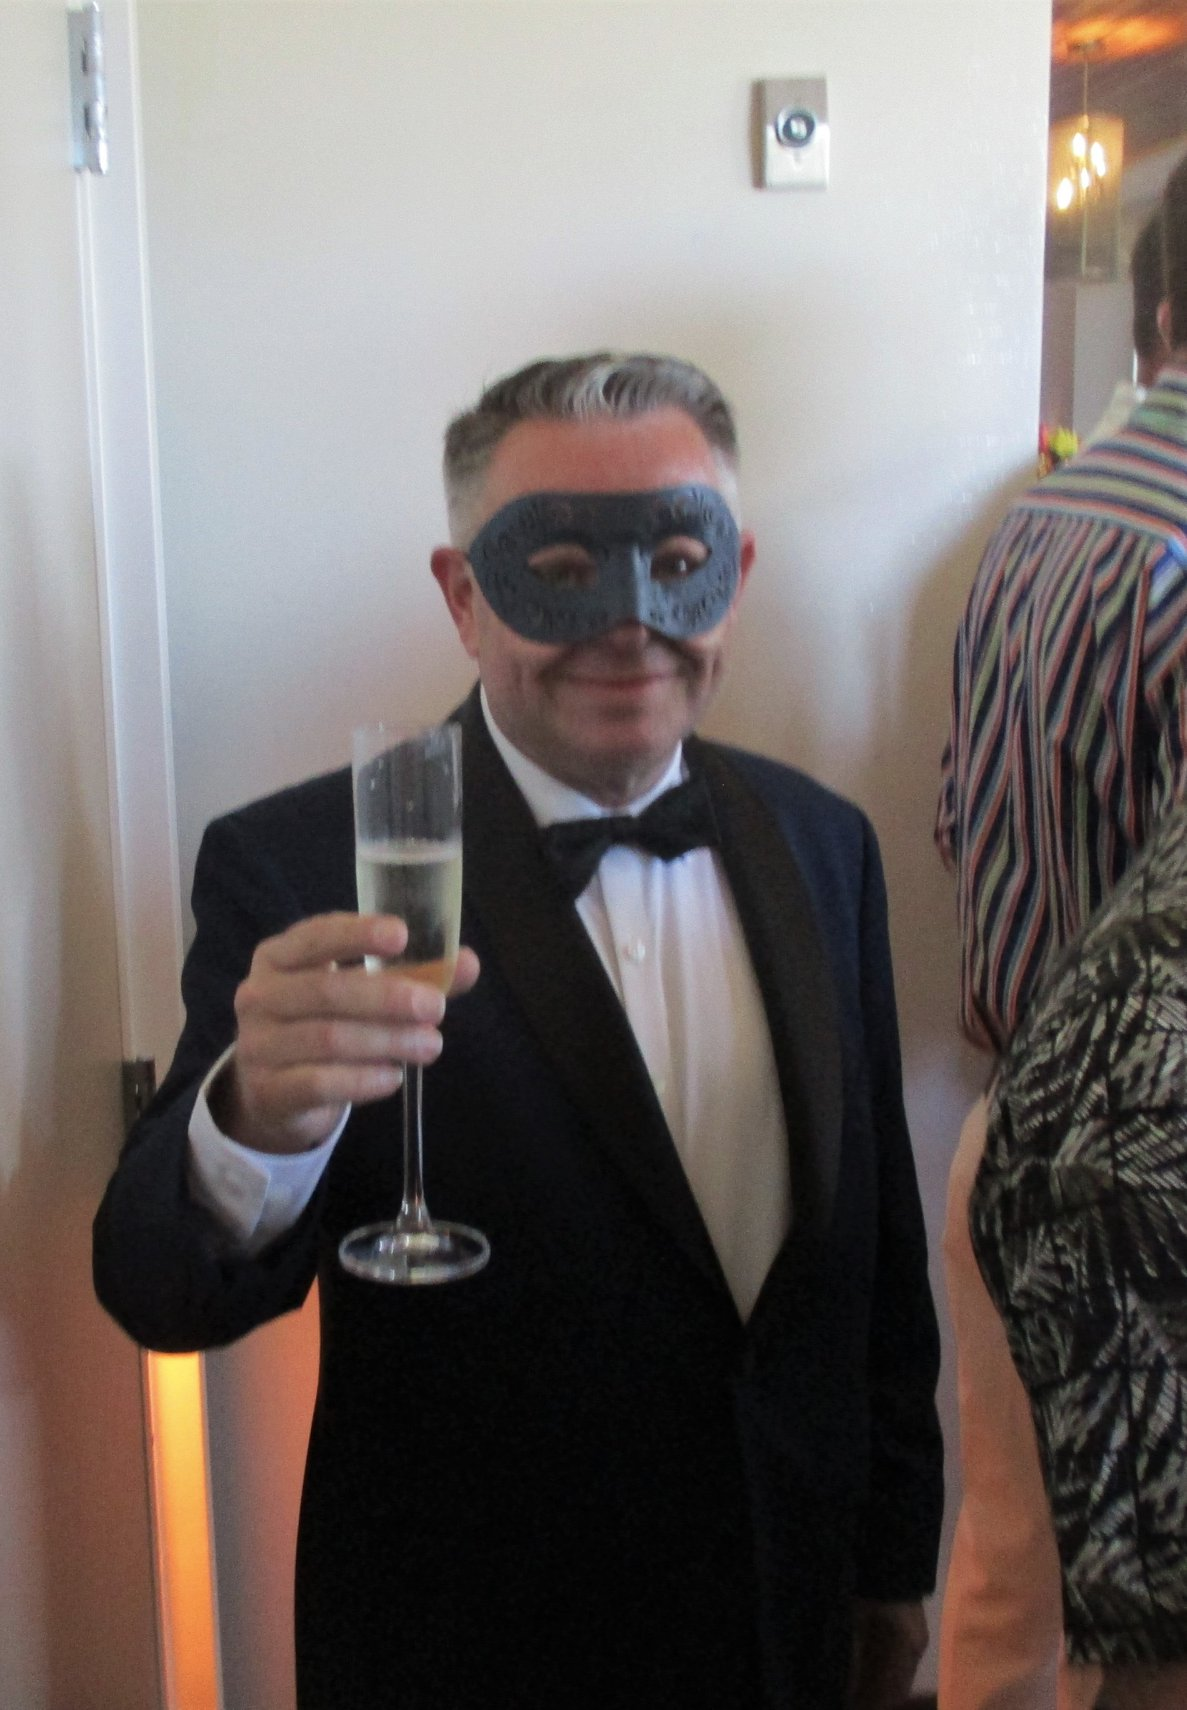 Masquerade Ball - Bill in Tuxedo